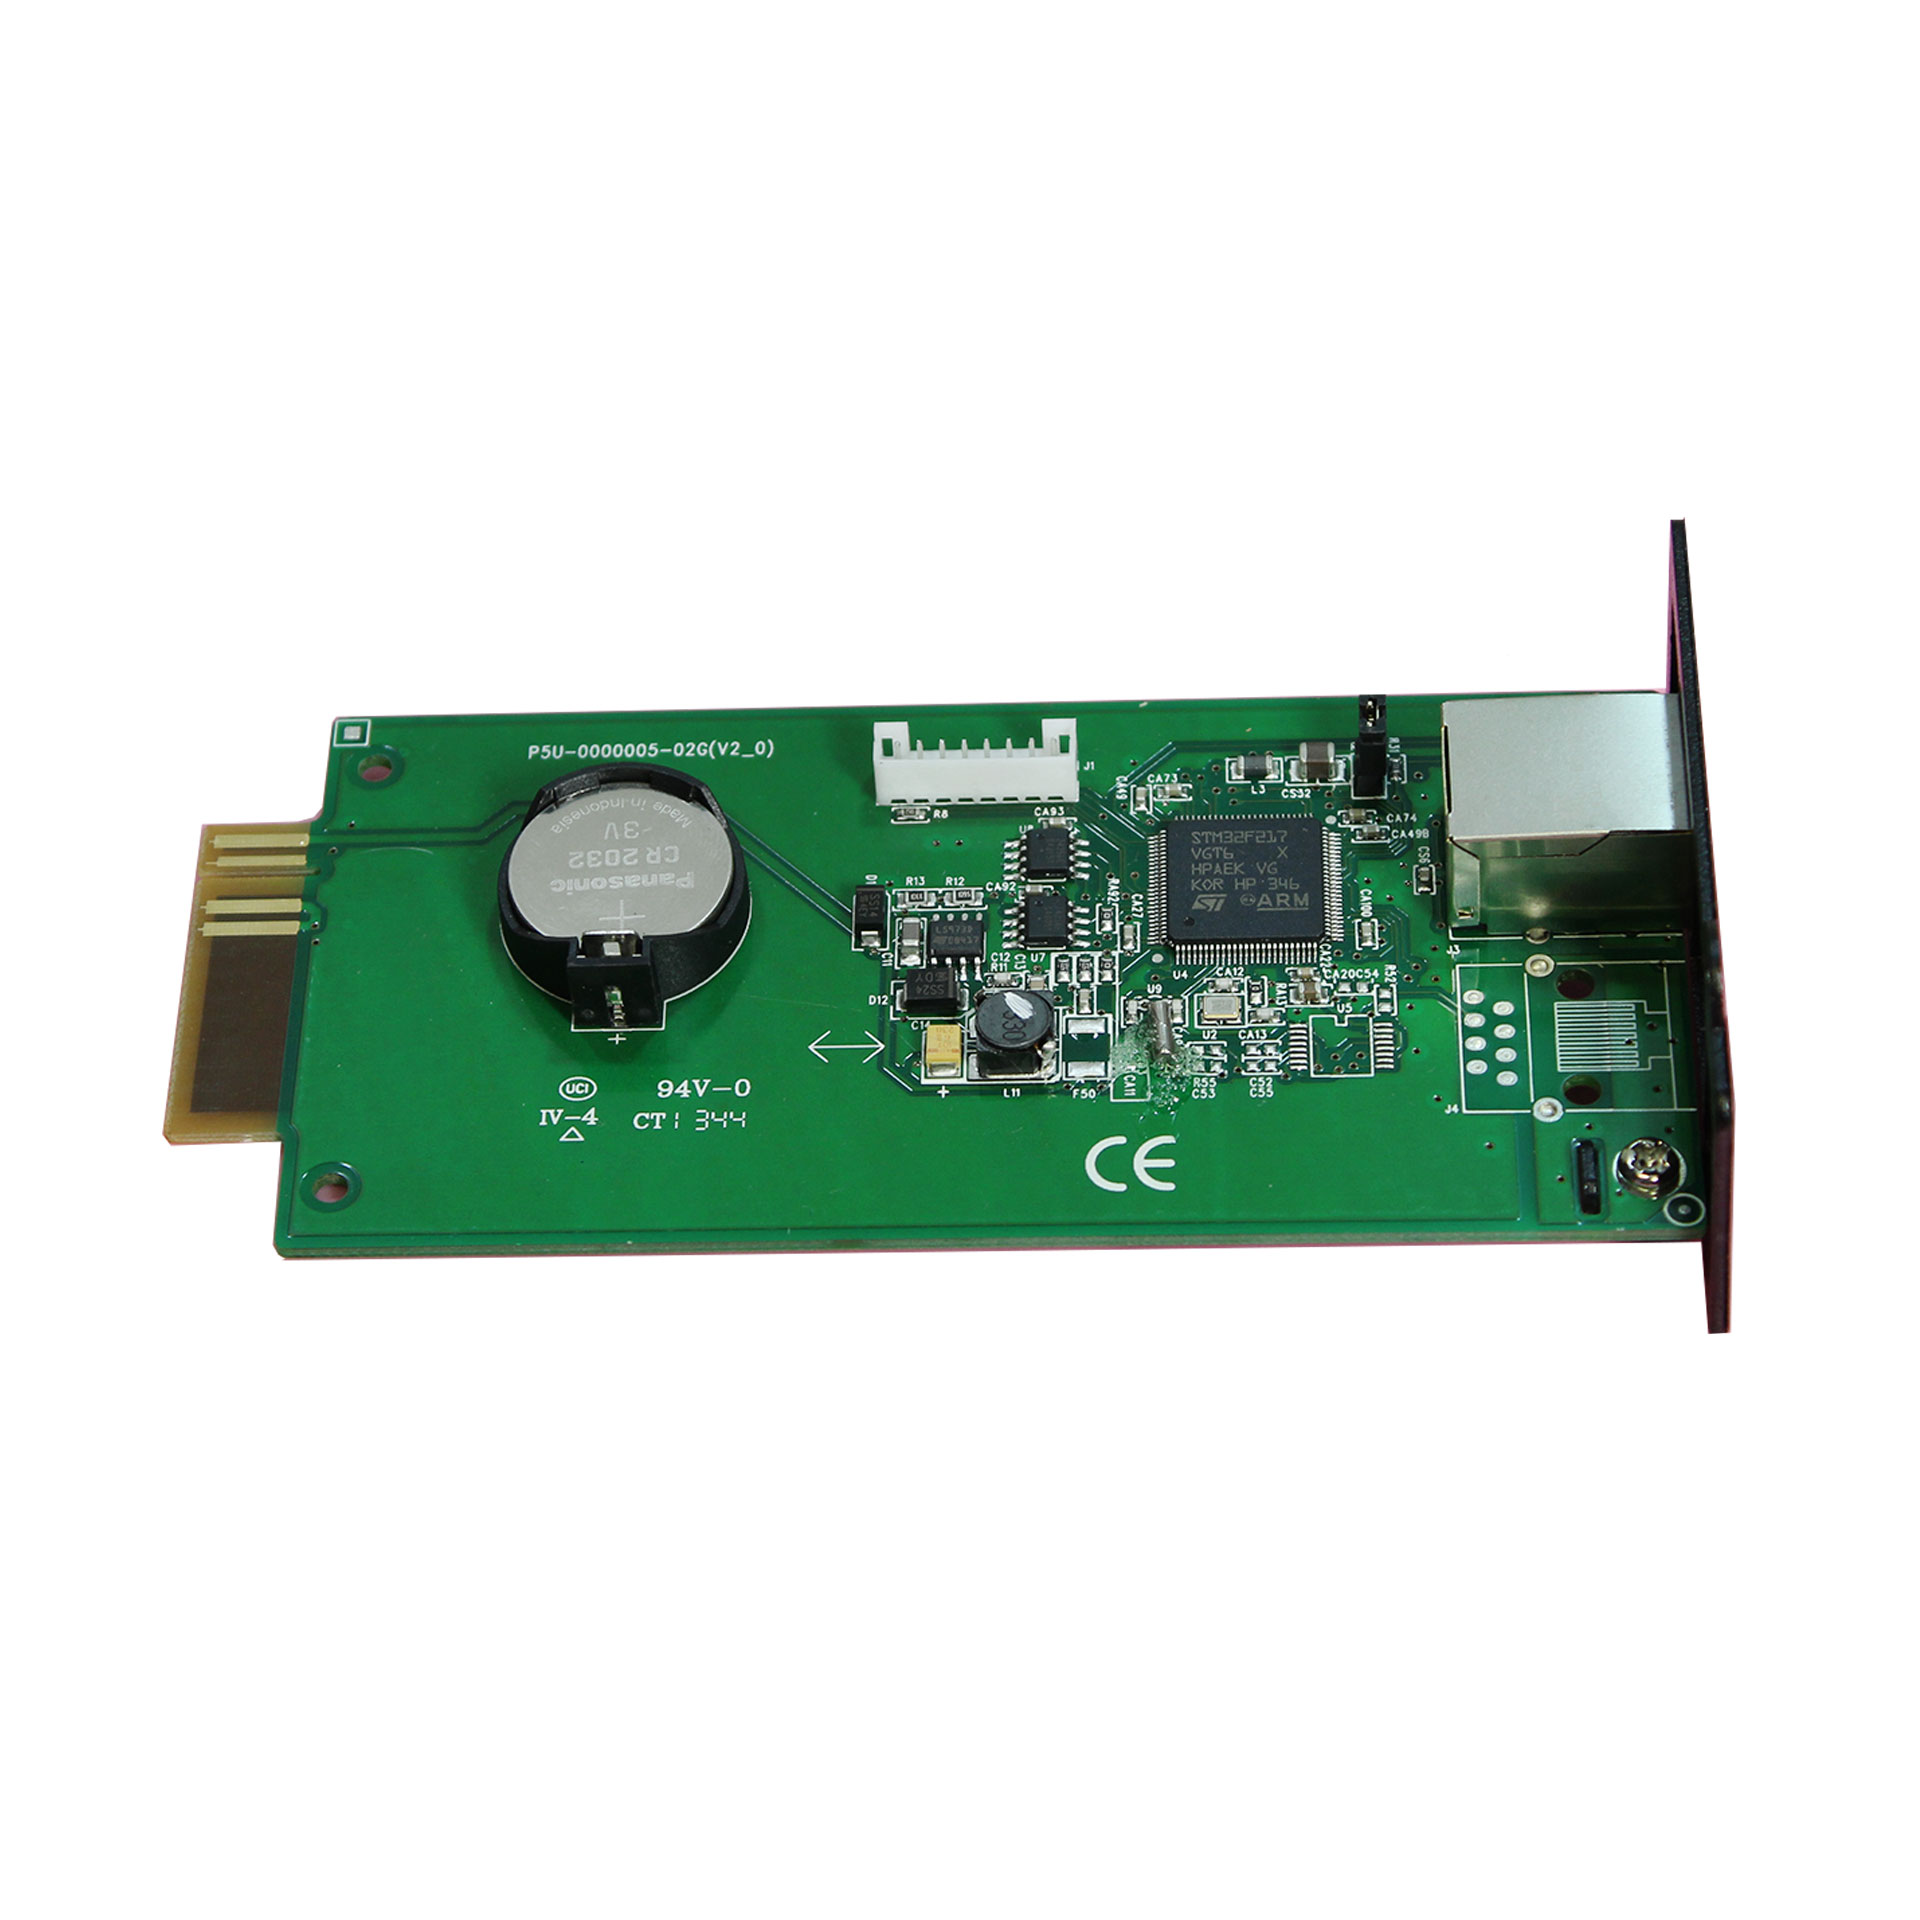 CyberPower RMCARD302 OL Series Remote Management Card Mini Slot#